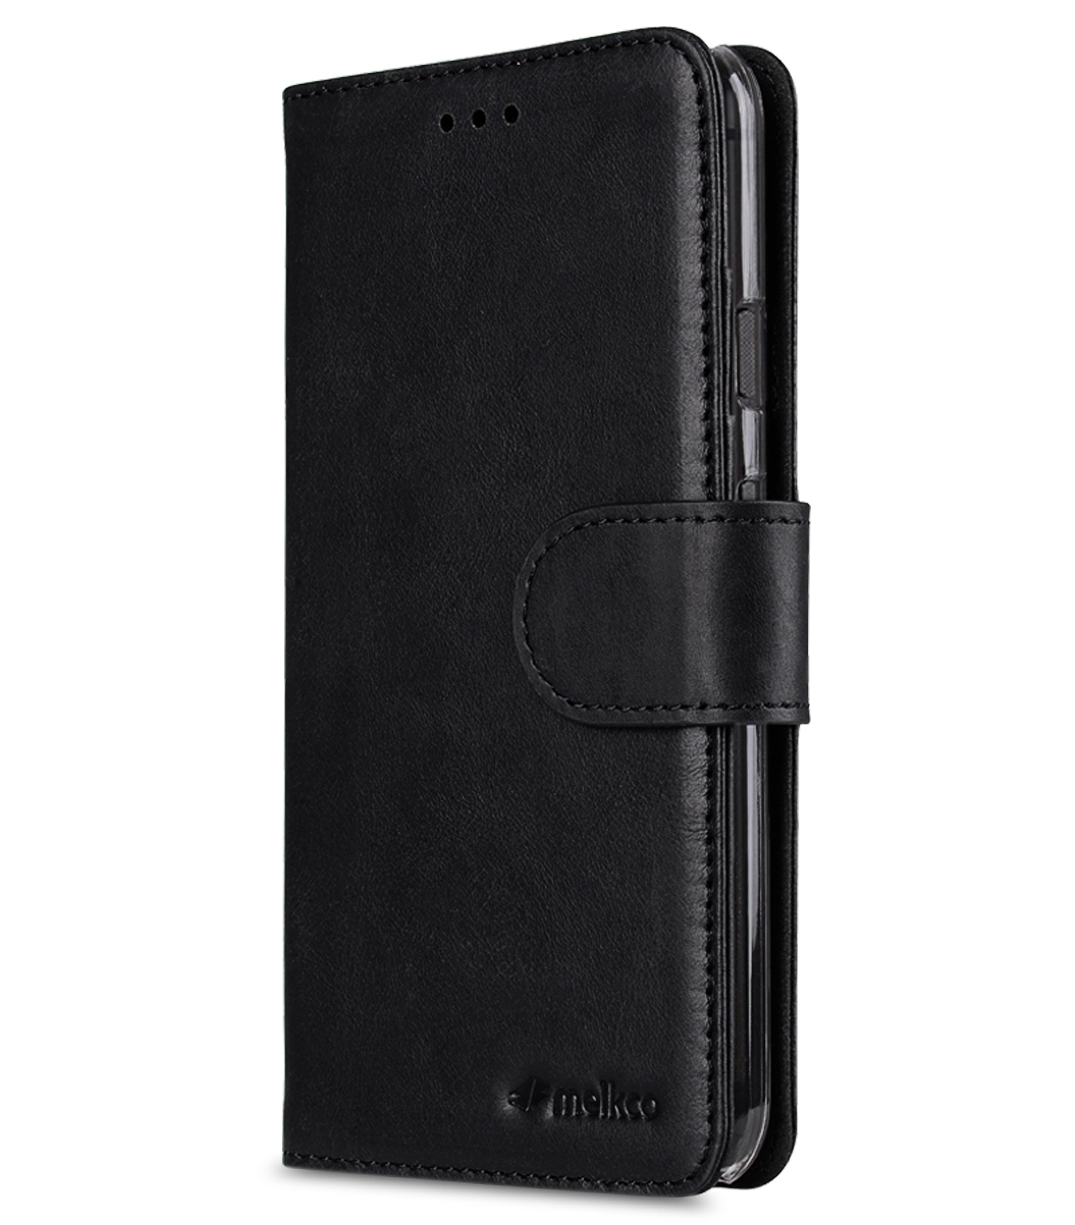 Melkco Premium Leather Case for Google Pixel - Wallet Book Type with Stand Function (Vintage Black)